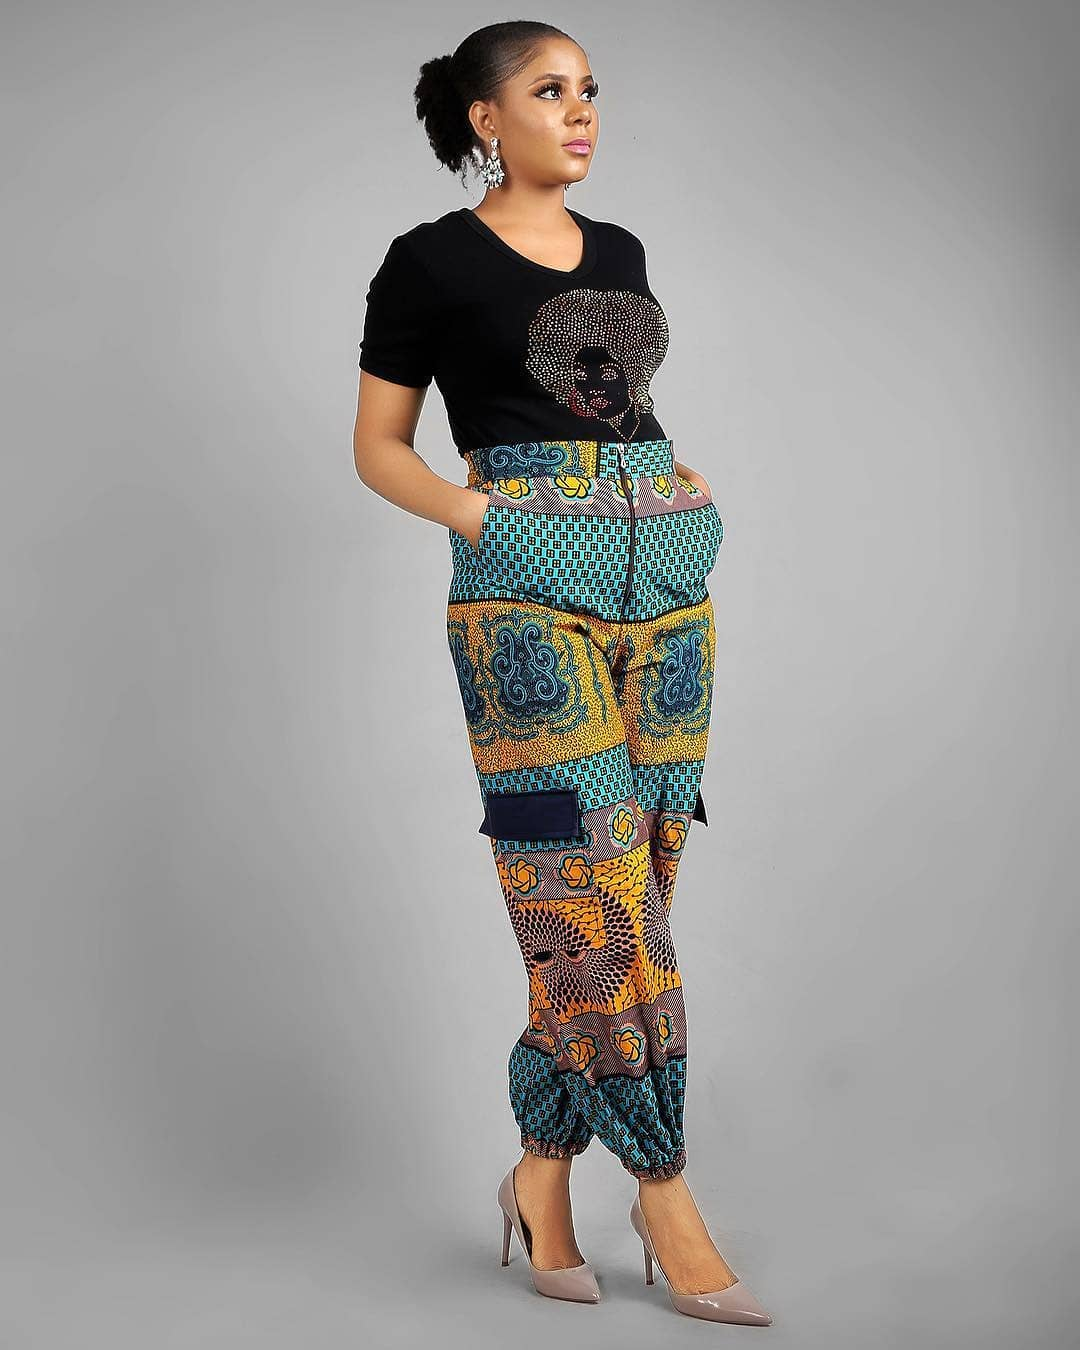 8 Gorgeous Ankara Trousers You Need To See